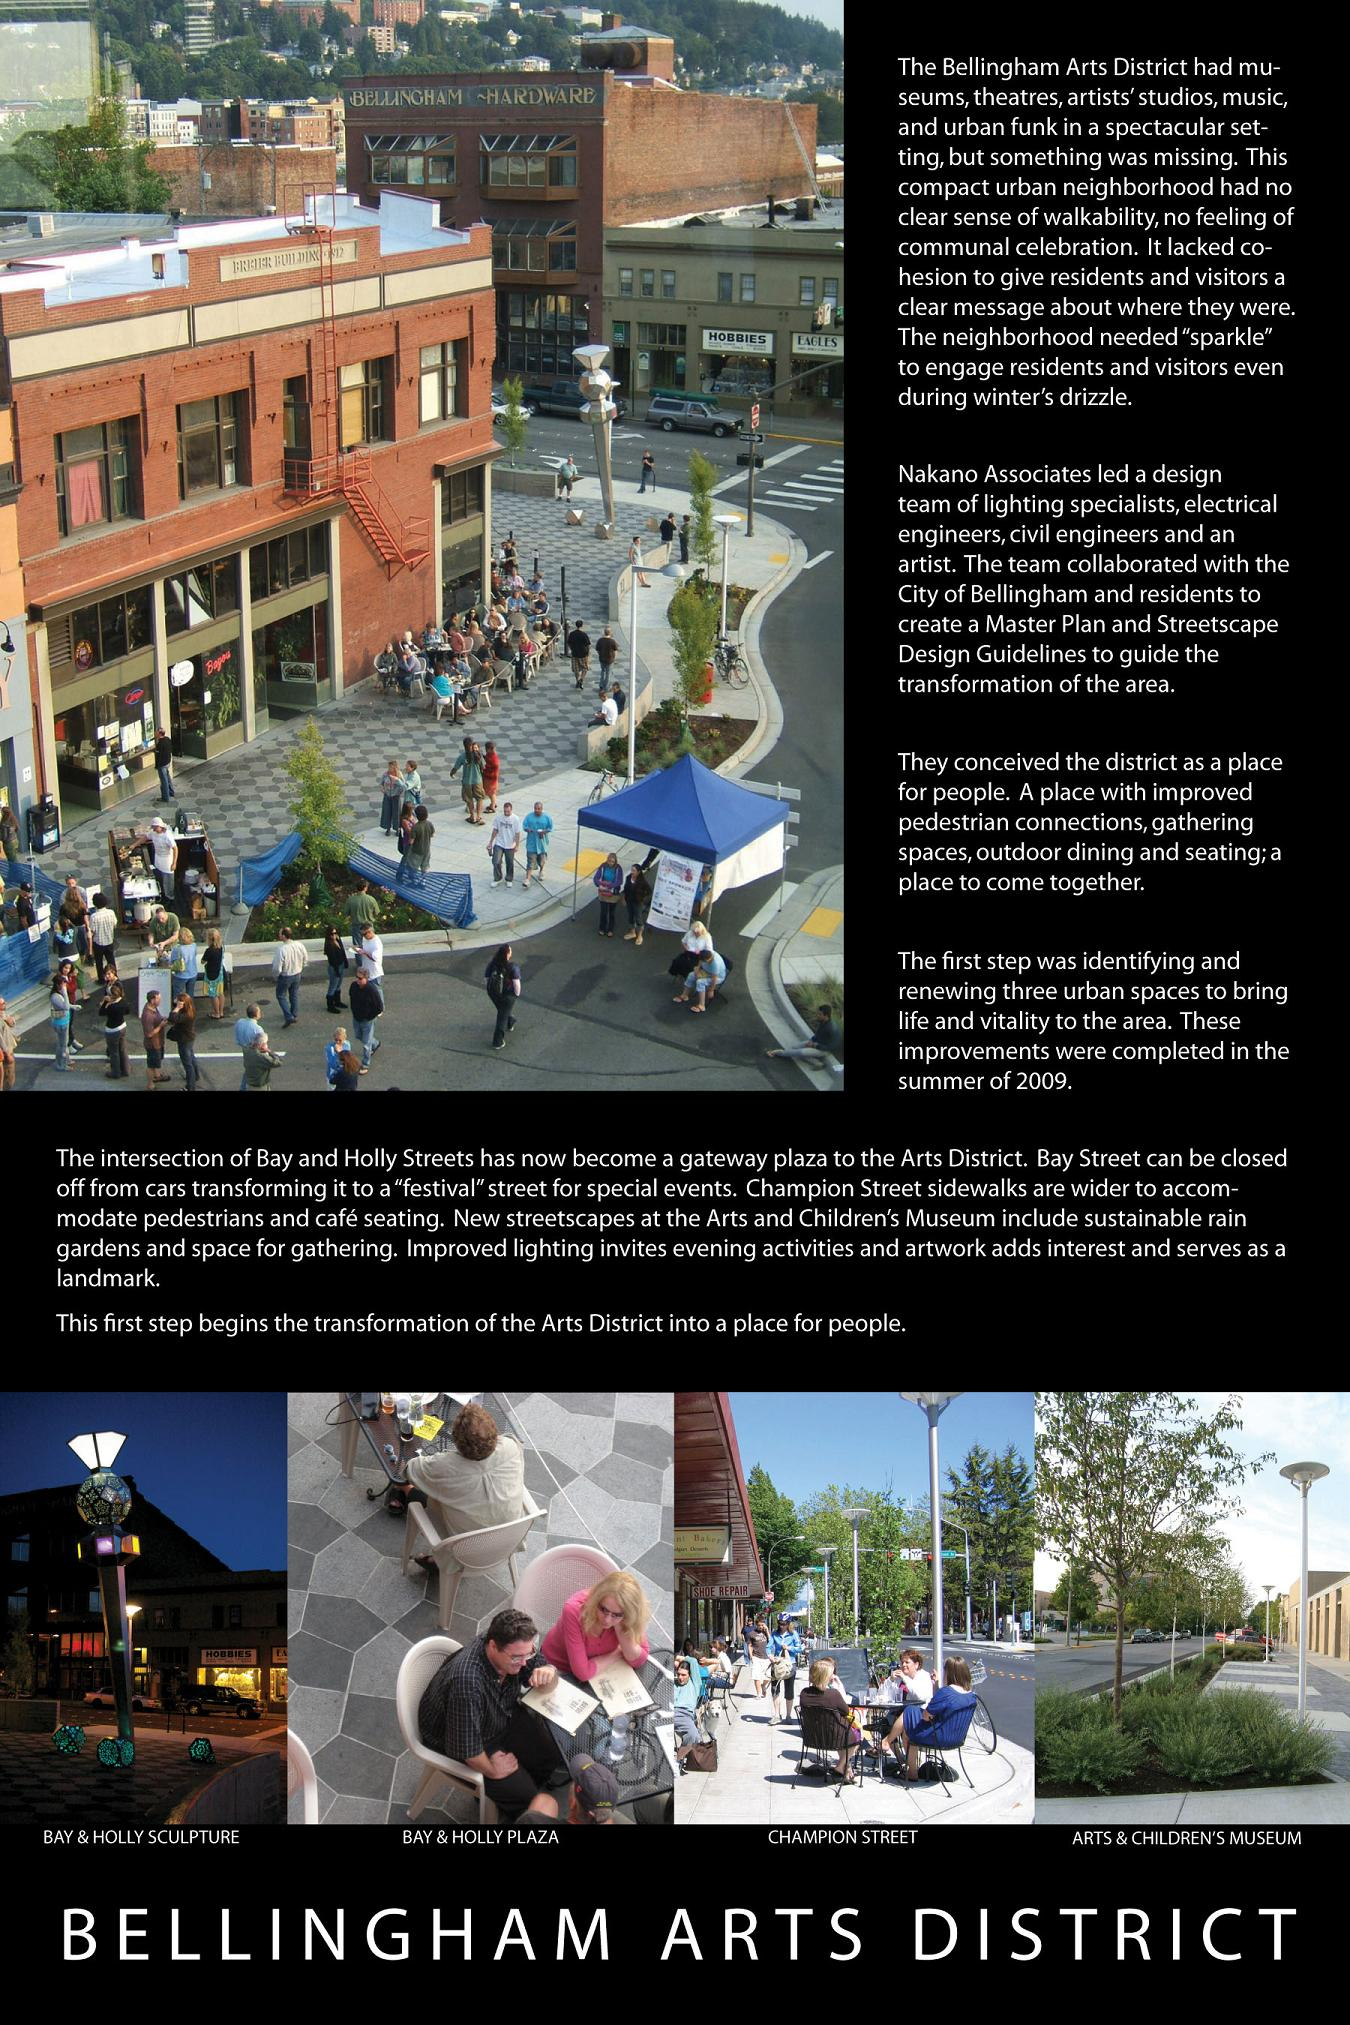 Bellingham Arts District Board, Nakano Associates